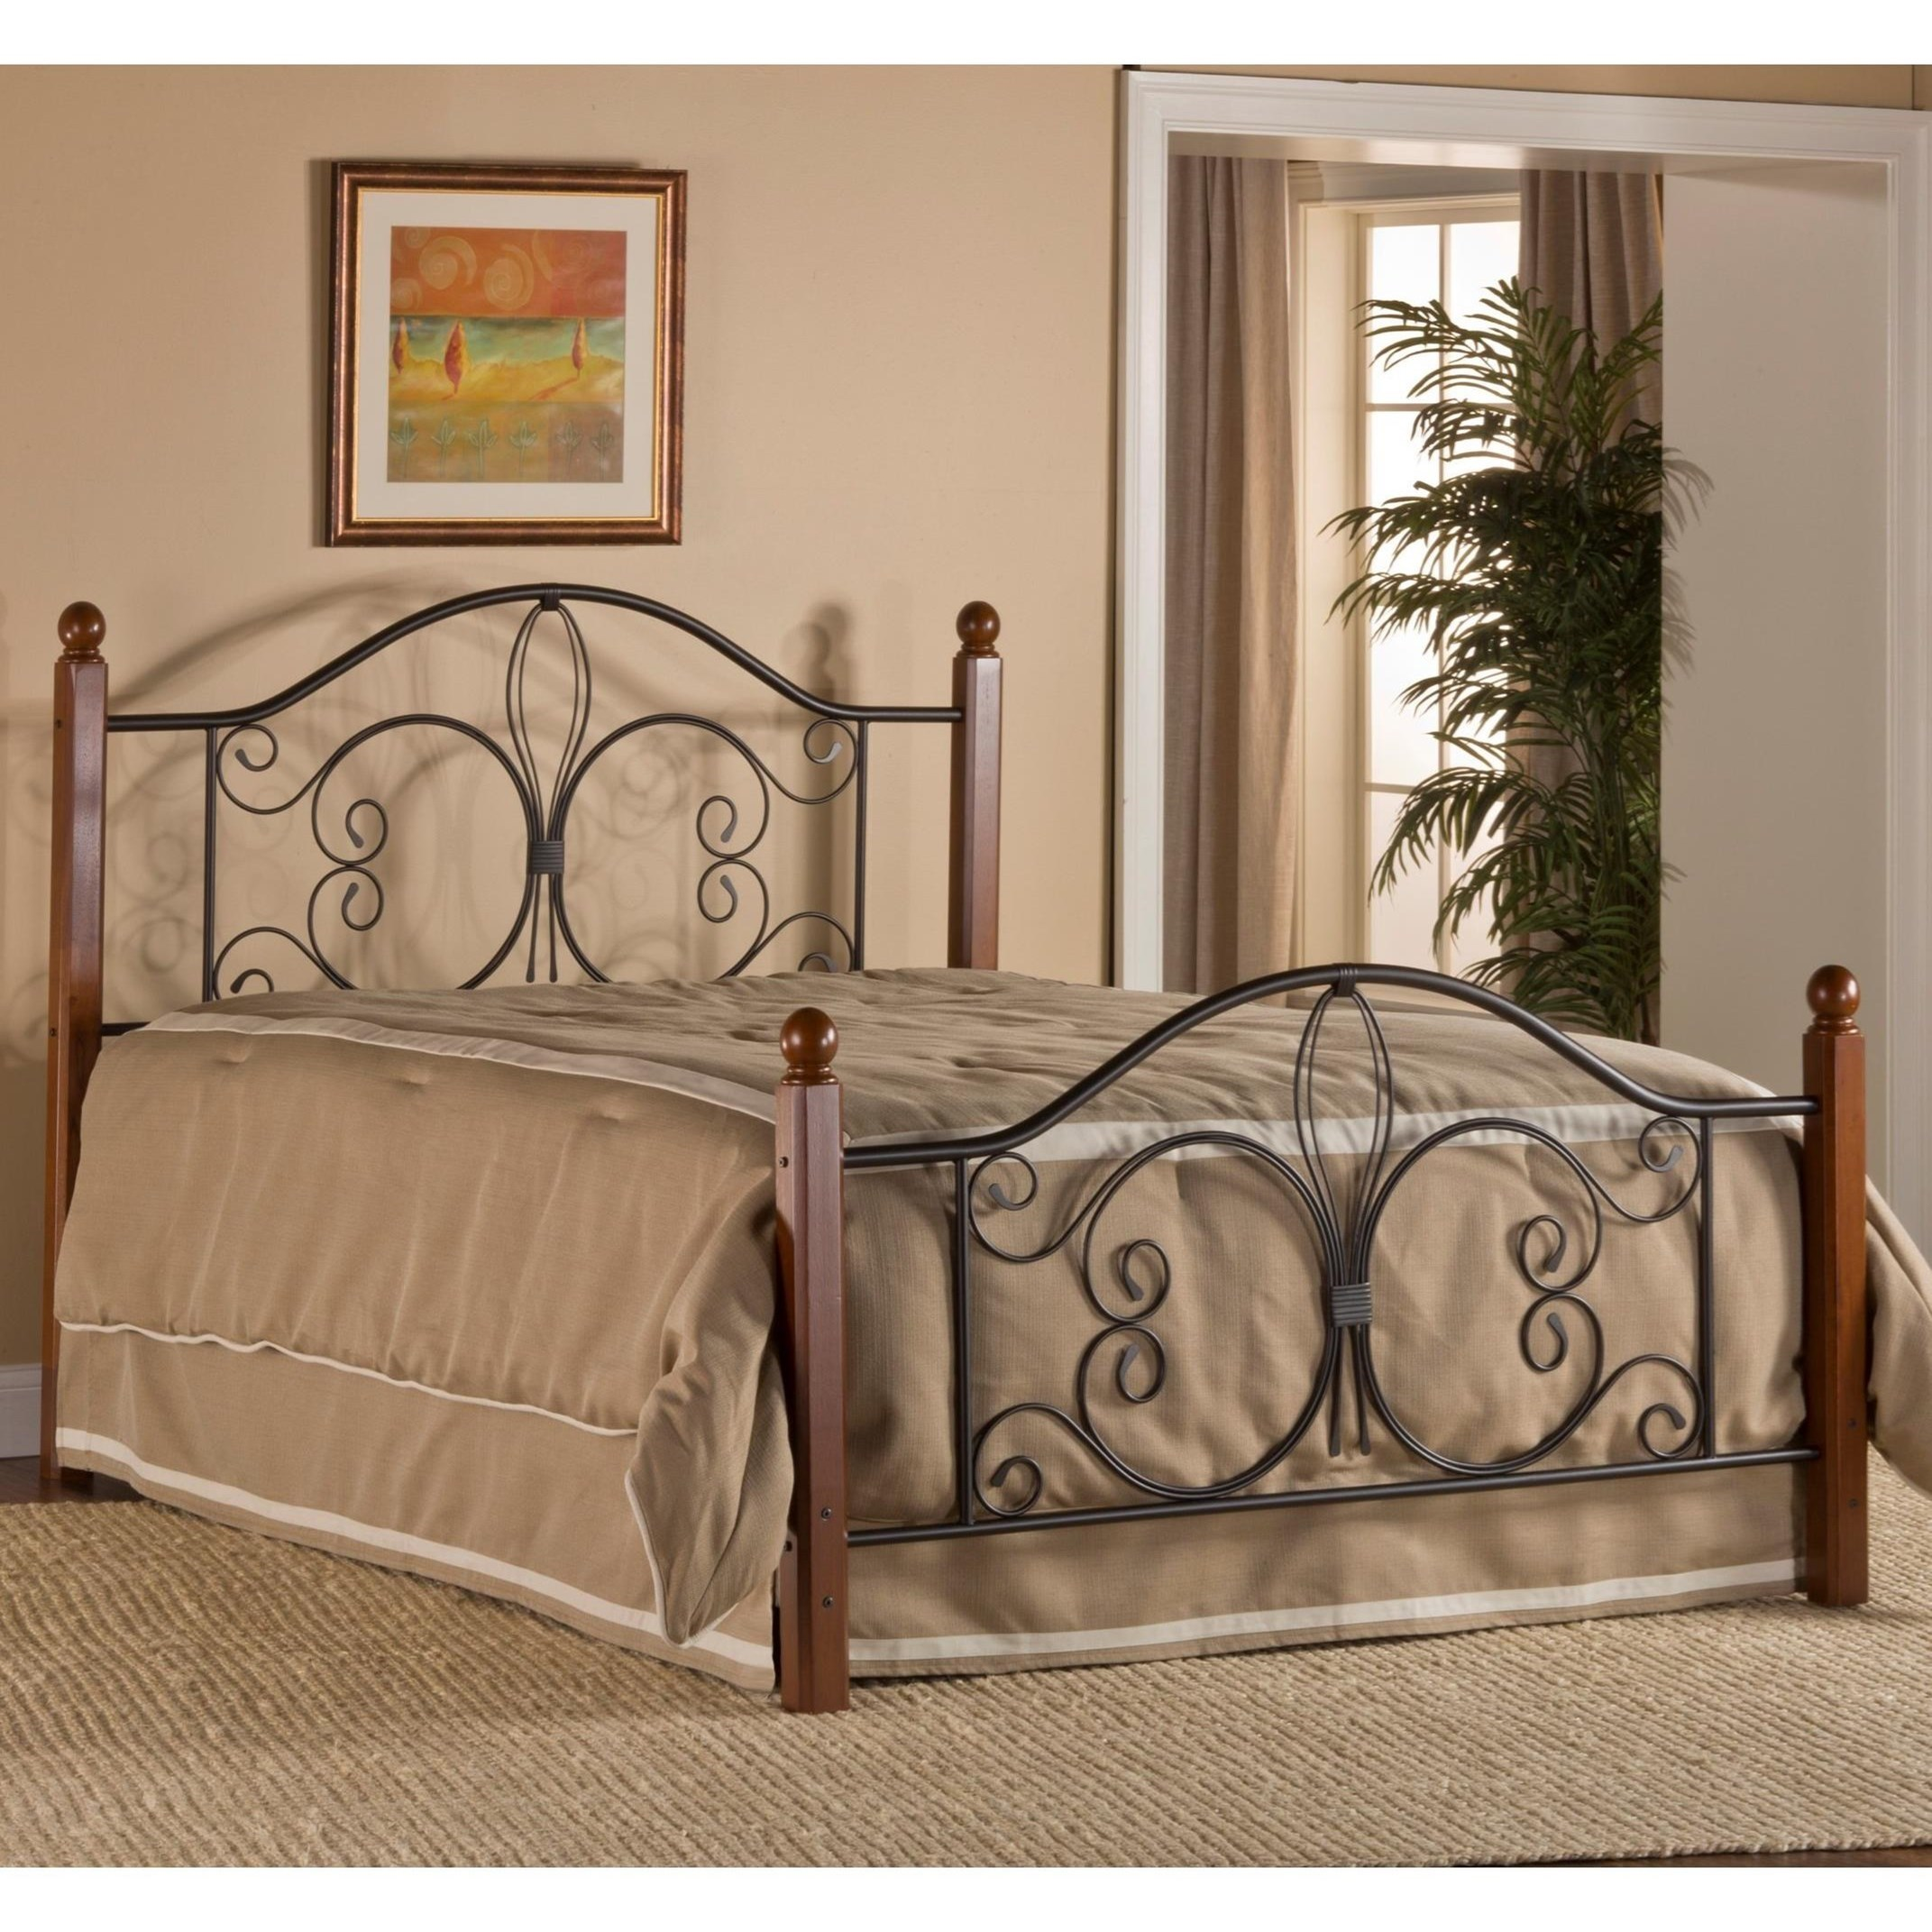 Hillsdale Metal Beds 1422bqrp Queen Milwaukee Wood Post Bed With Bed Frame Corner Furniture Panel Beds